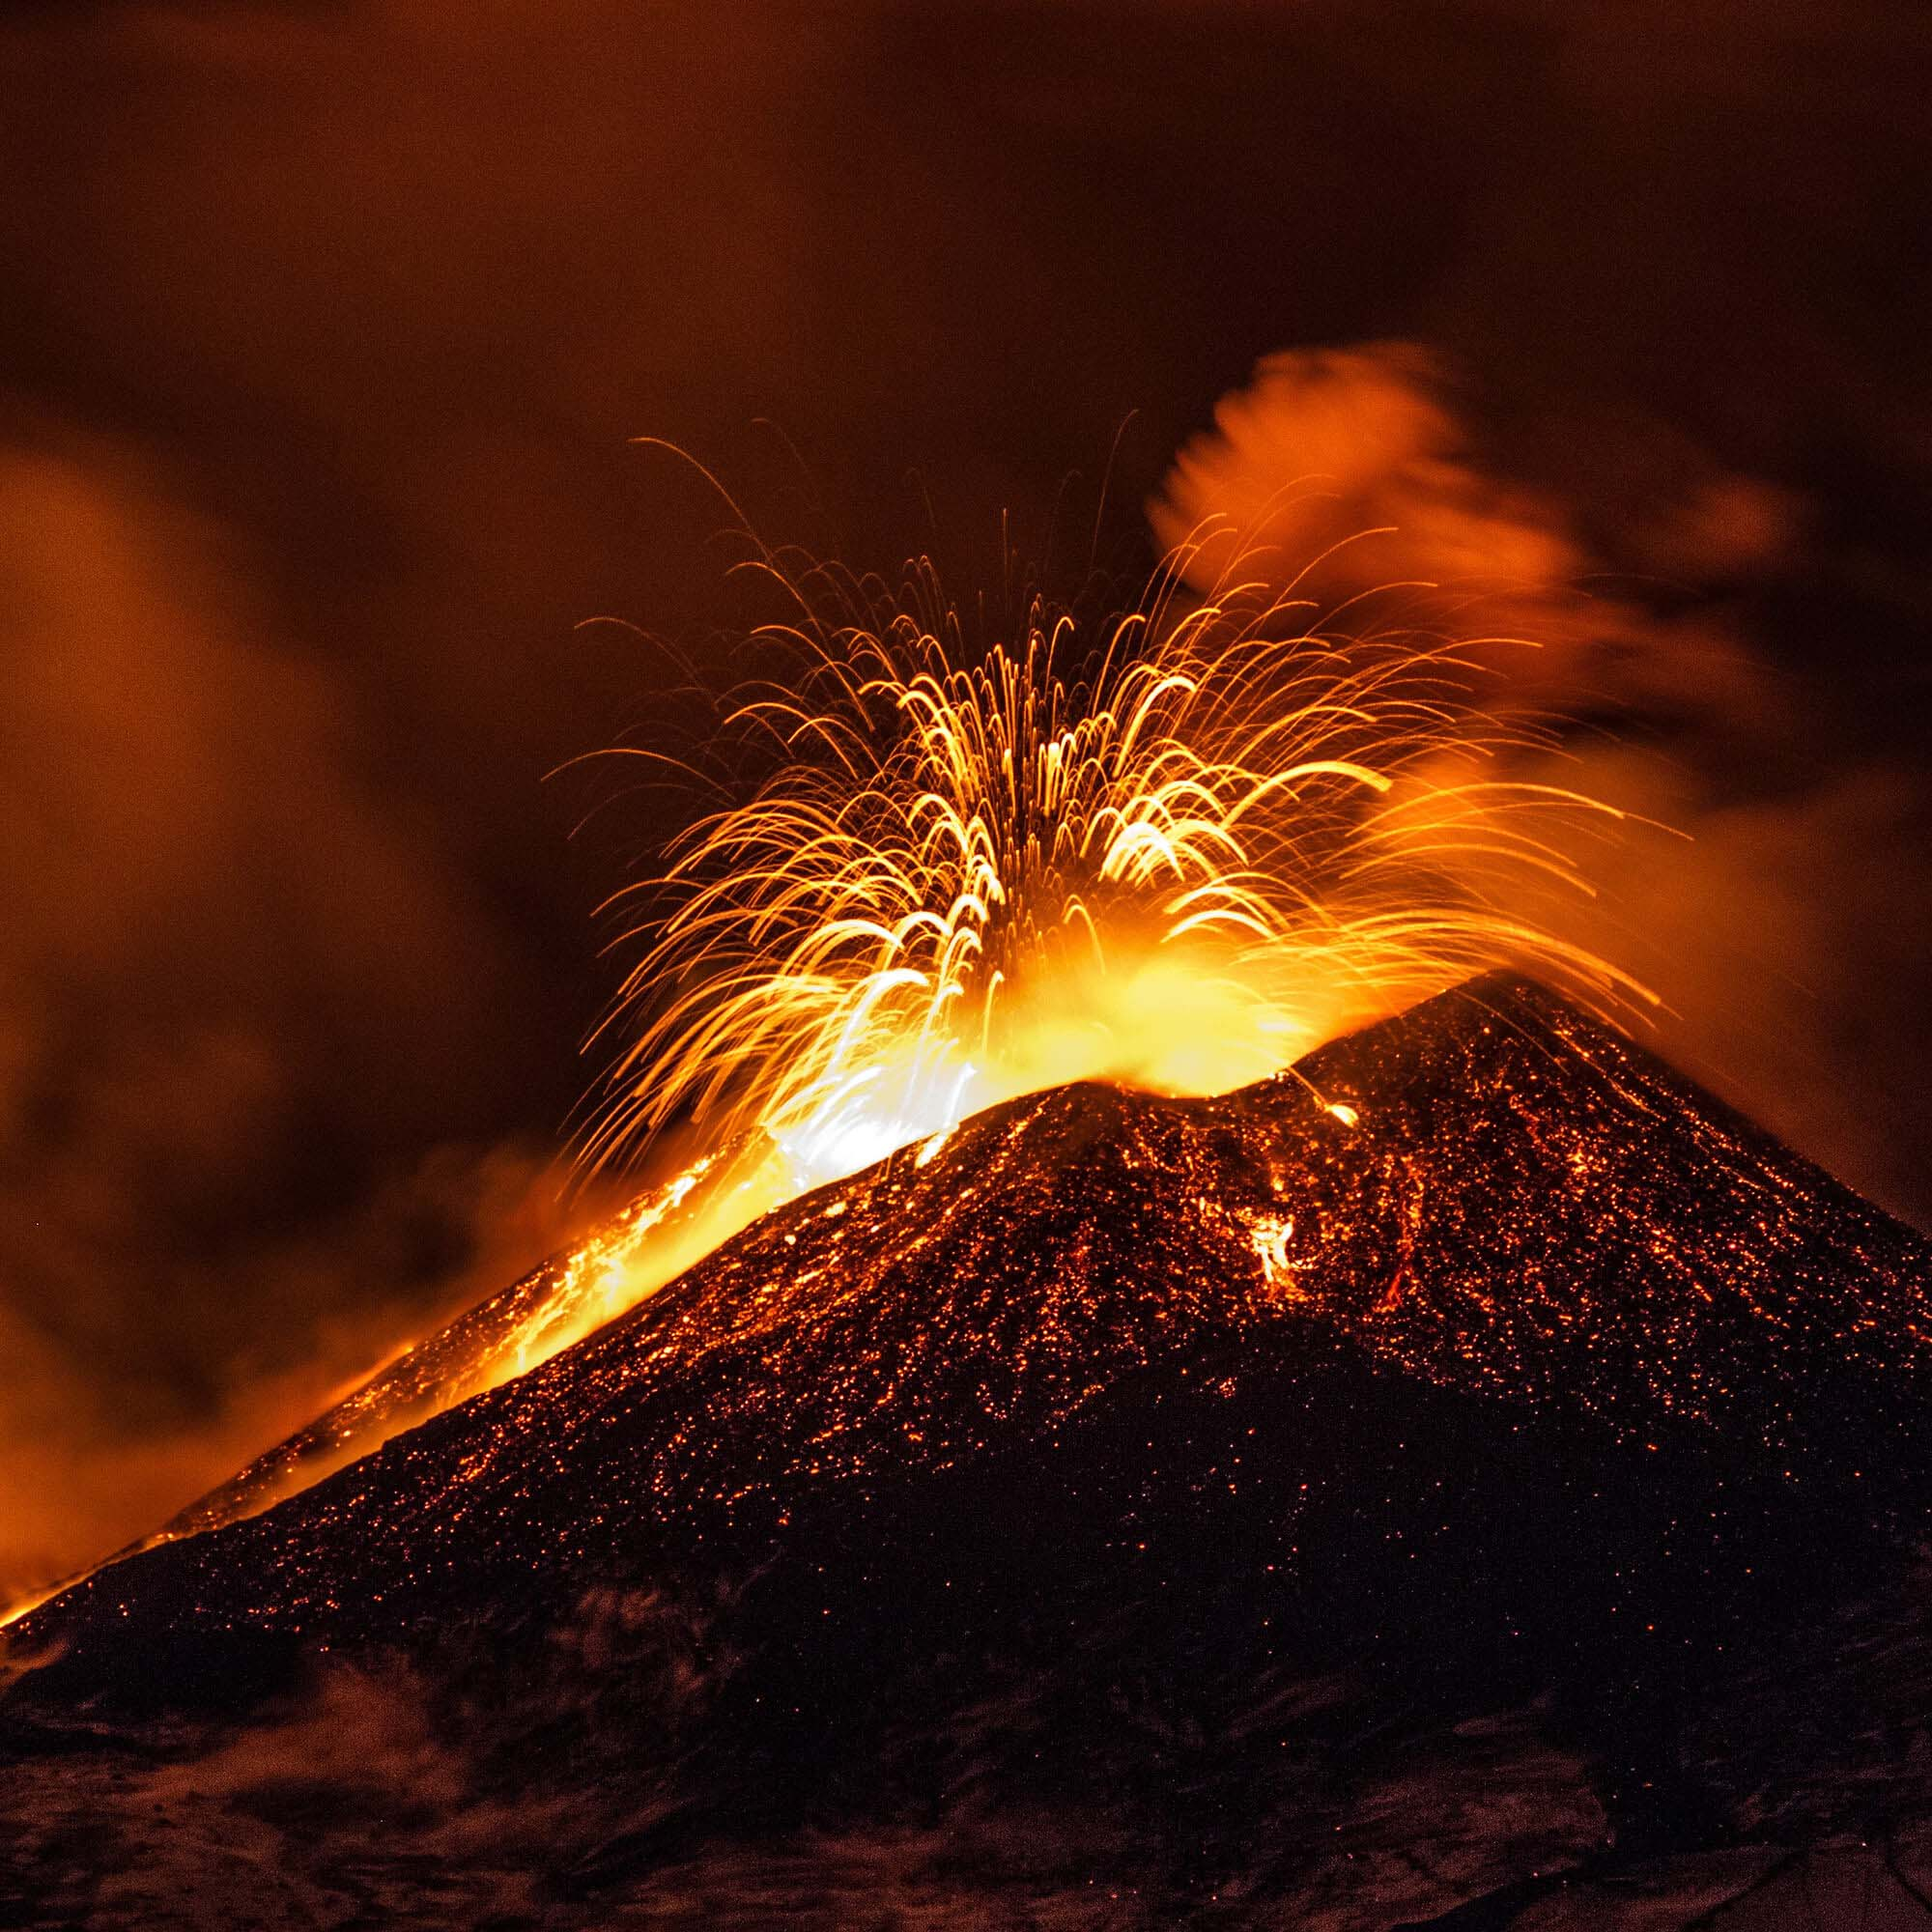 A volcano eruption, the miracle diamond creation